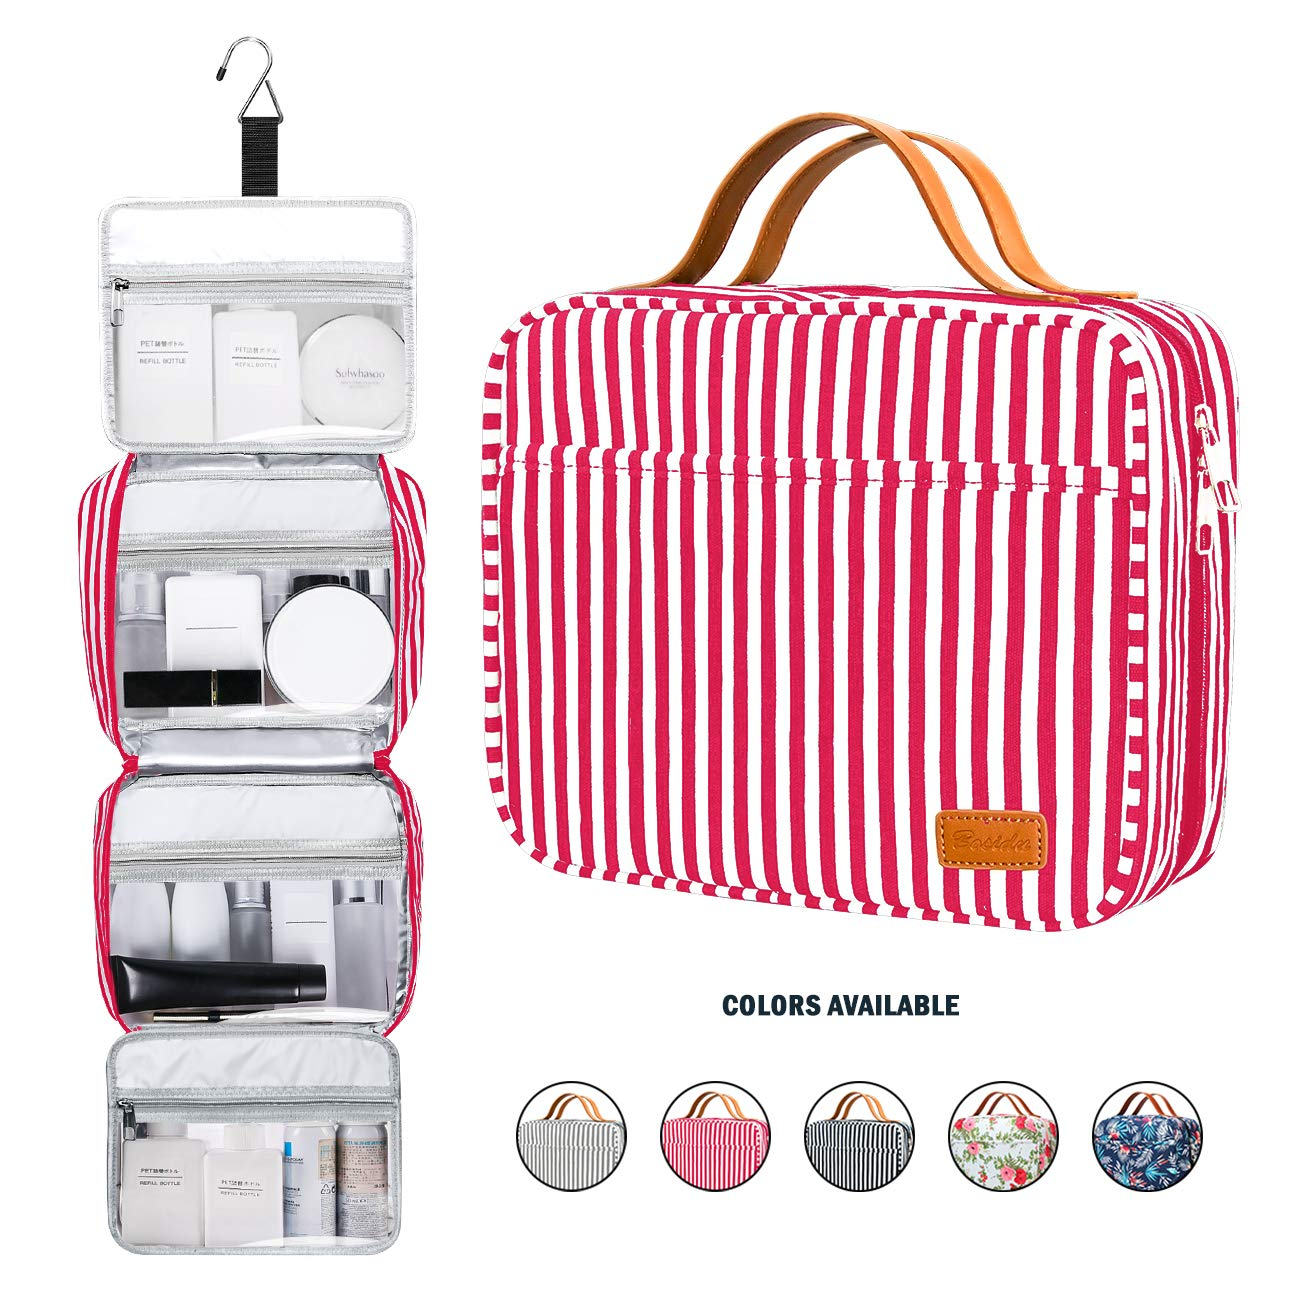 Hanging Travel Toiletry Bag,Large Capacity Cosmetic Toiletry Travel Organizer for Women/Men with 4 Compartments & 1 Sturdy Hook,Perfect for Travel/Daily Use (Red & White Striped)